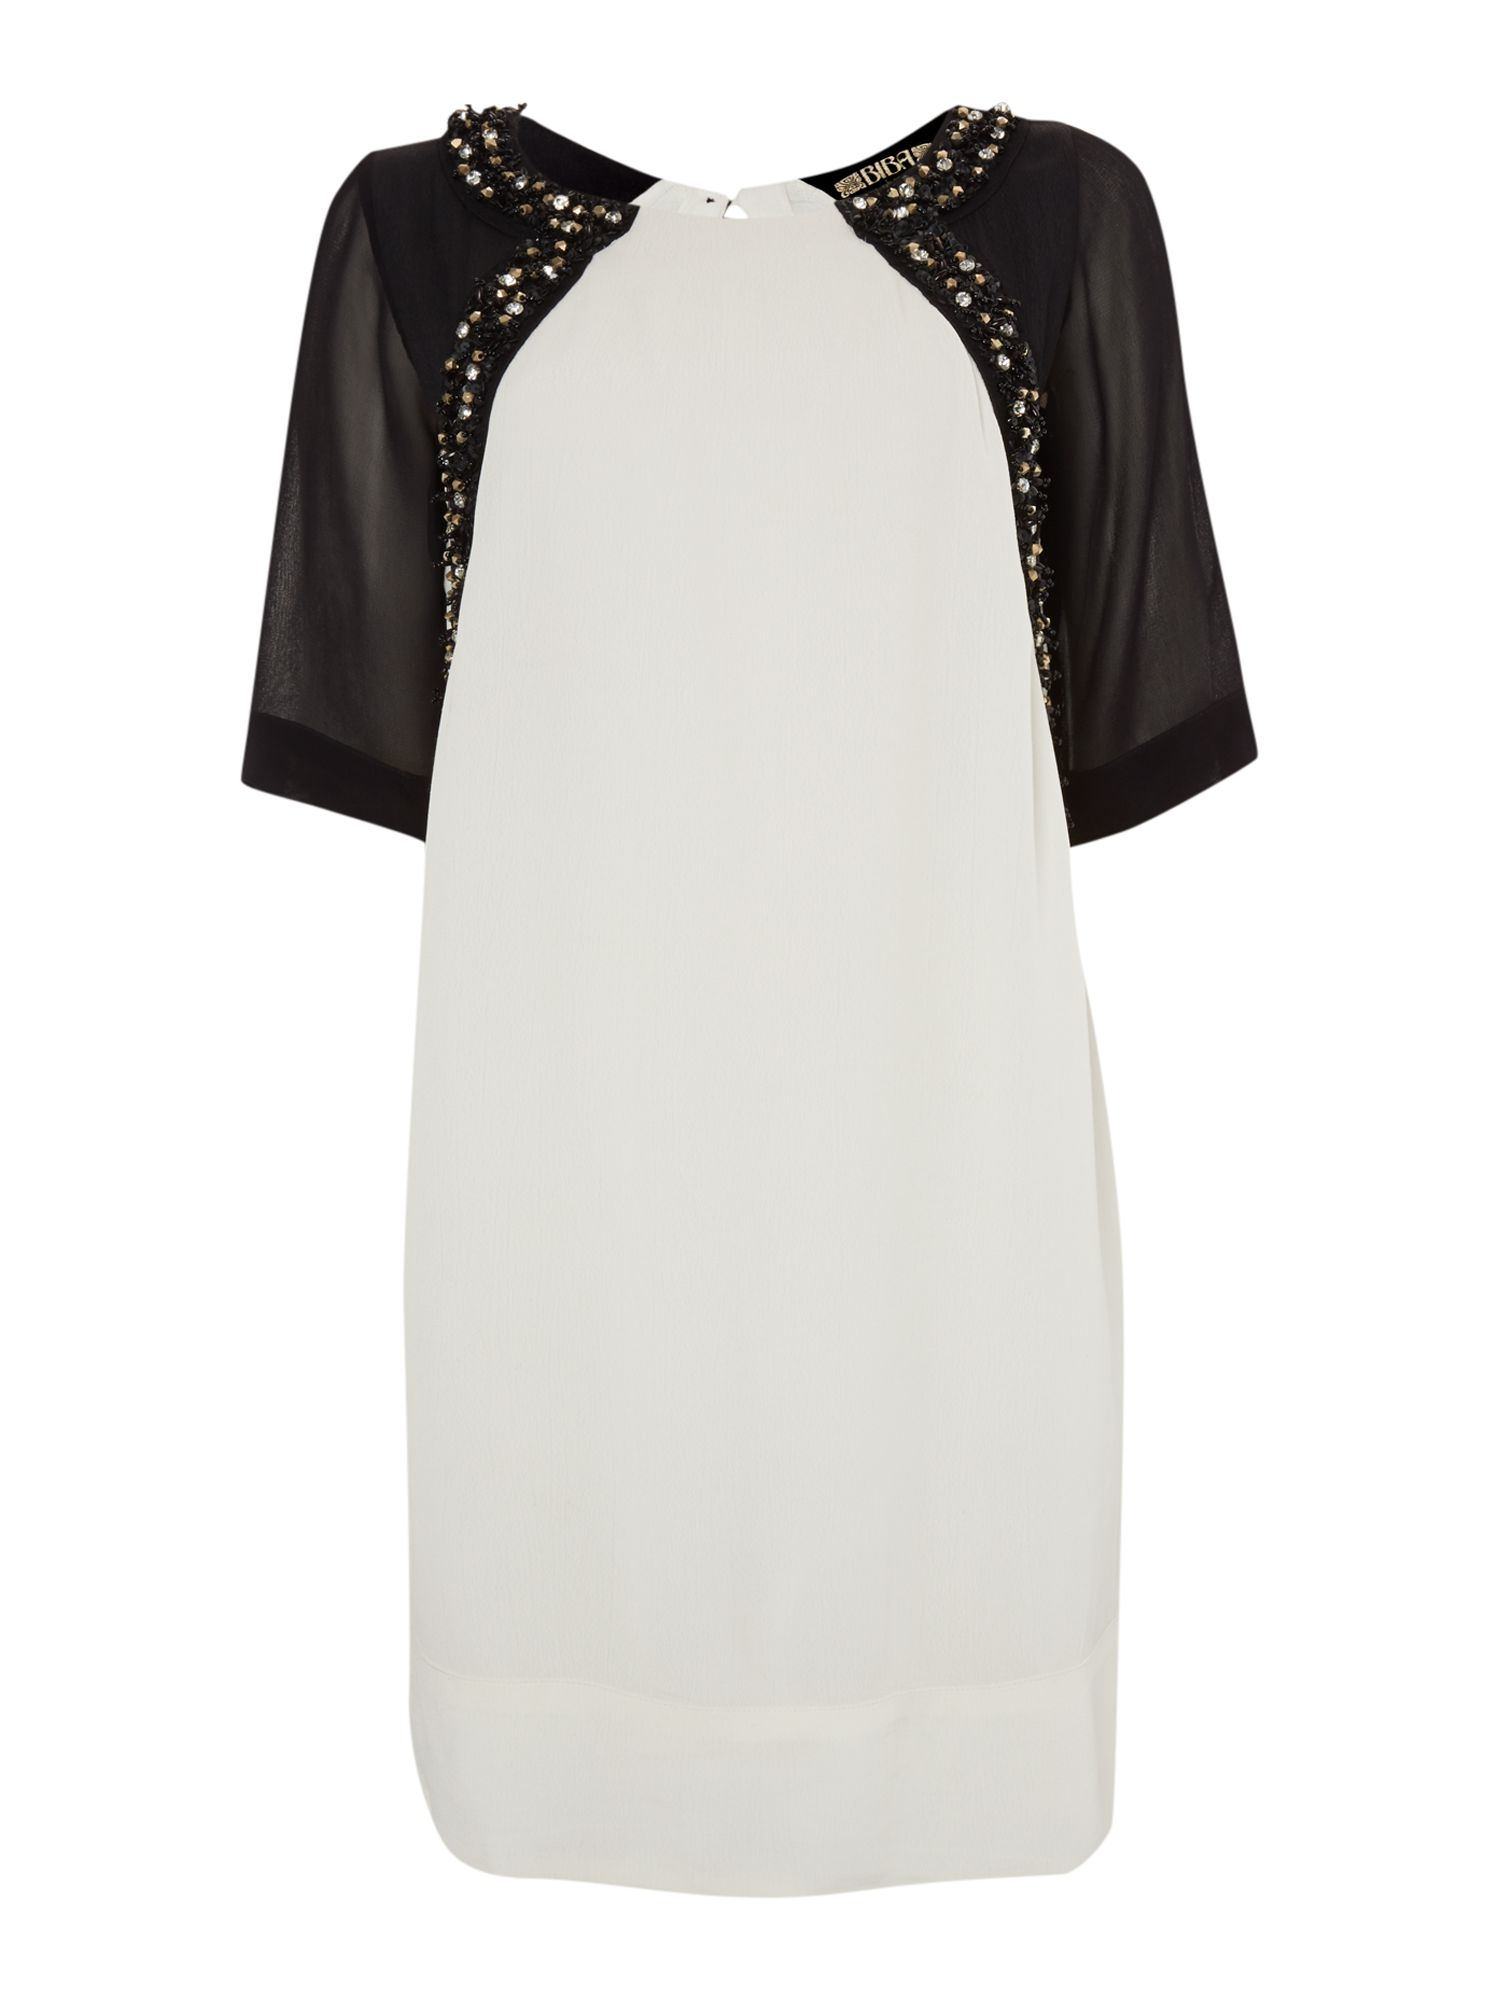 Jewelled front monochrome dress